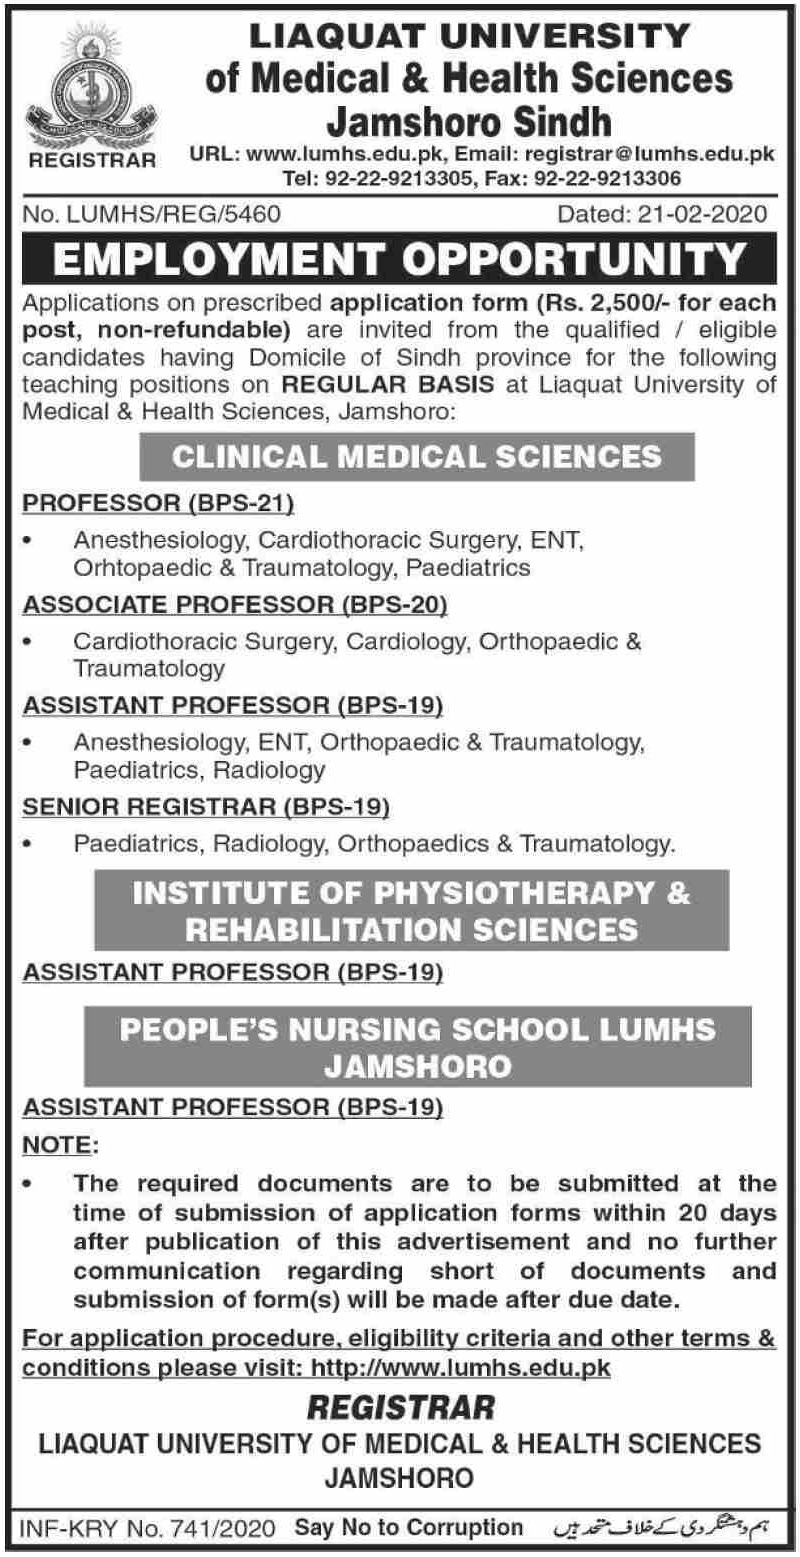 LUMHS Jamshoro Sindh Jobs 2020 Liaquat University of Medical & Health Sciences